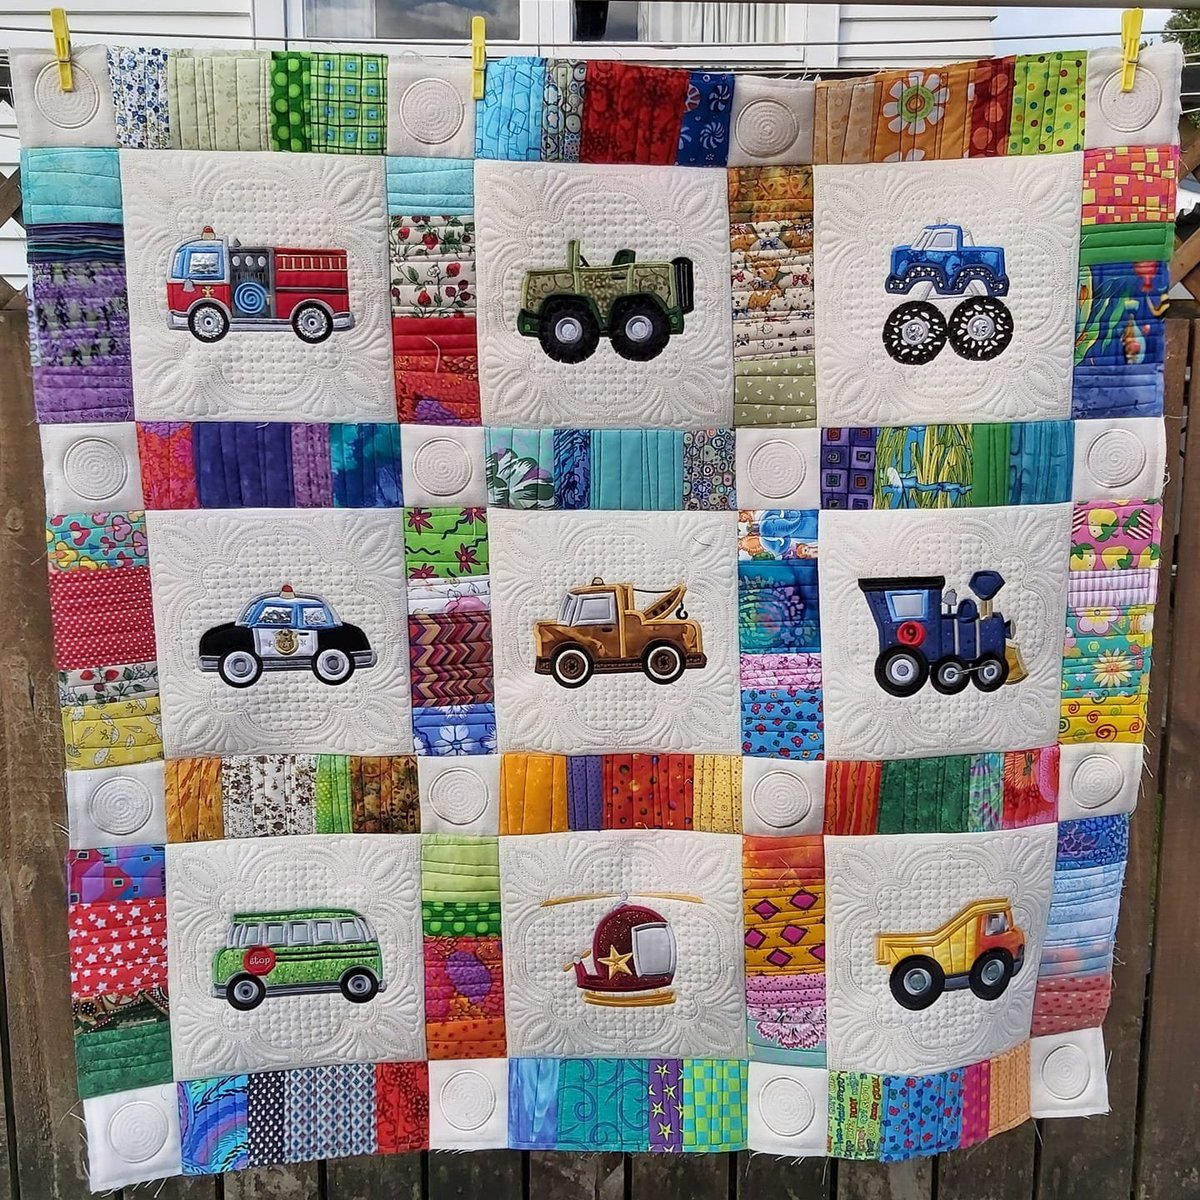 Are you drooling over this quilt yet?  Kathryn made this stunning quilt using embroidery designs from our Lets  Go Applique set.  https://www.bunnycup.com/embroidery-design-Lets-Go-Applique-5x7 …  #bunnycup #bunnycupembroidery #stitchtheworldabetterplace #applique #quilt #cars #embroidery